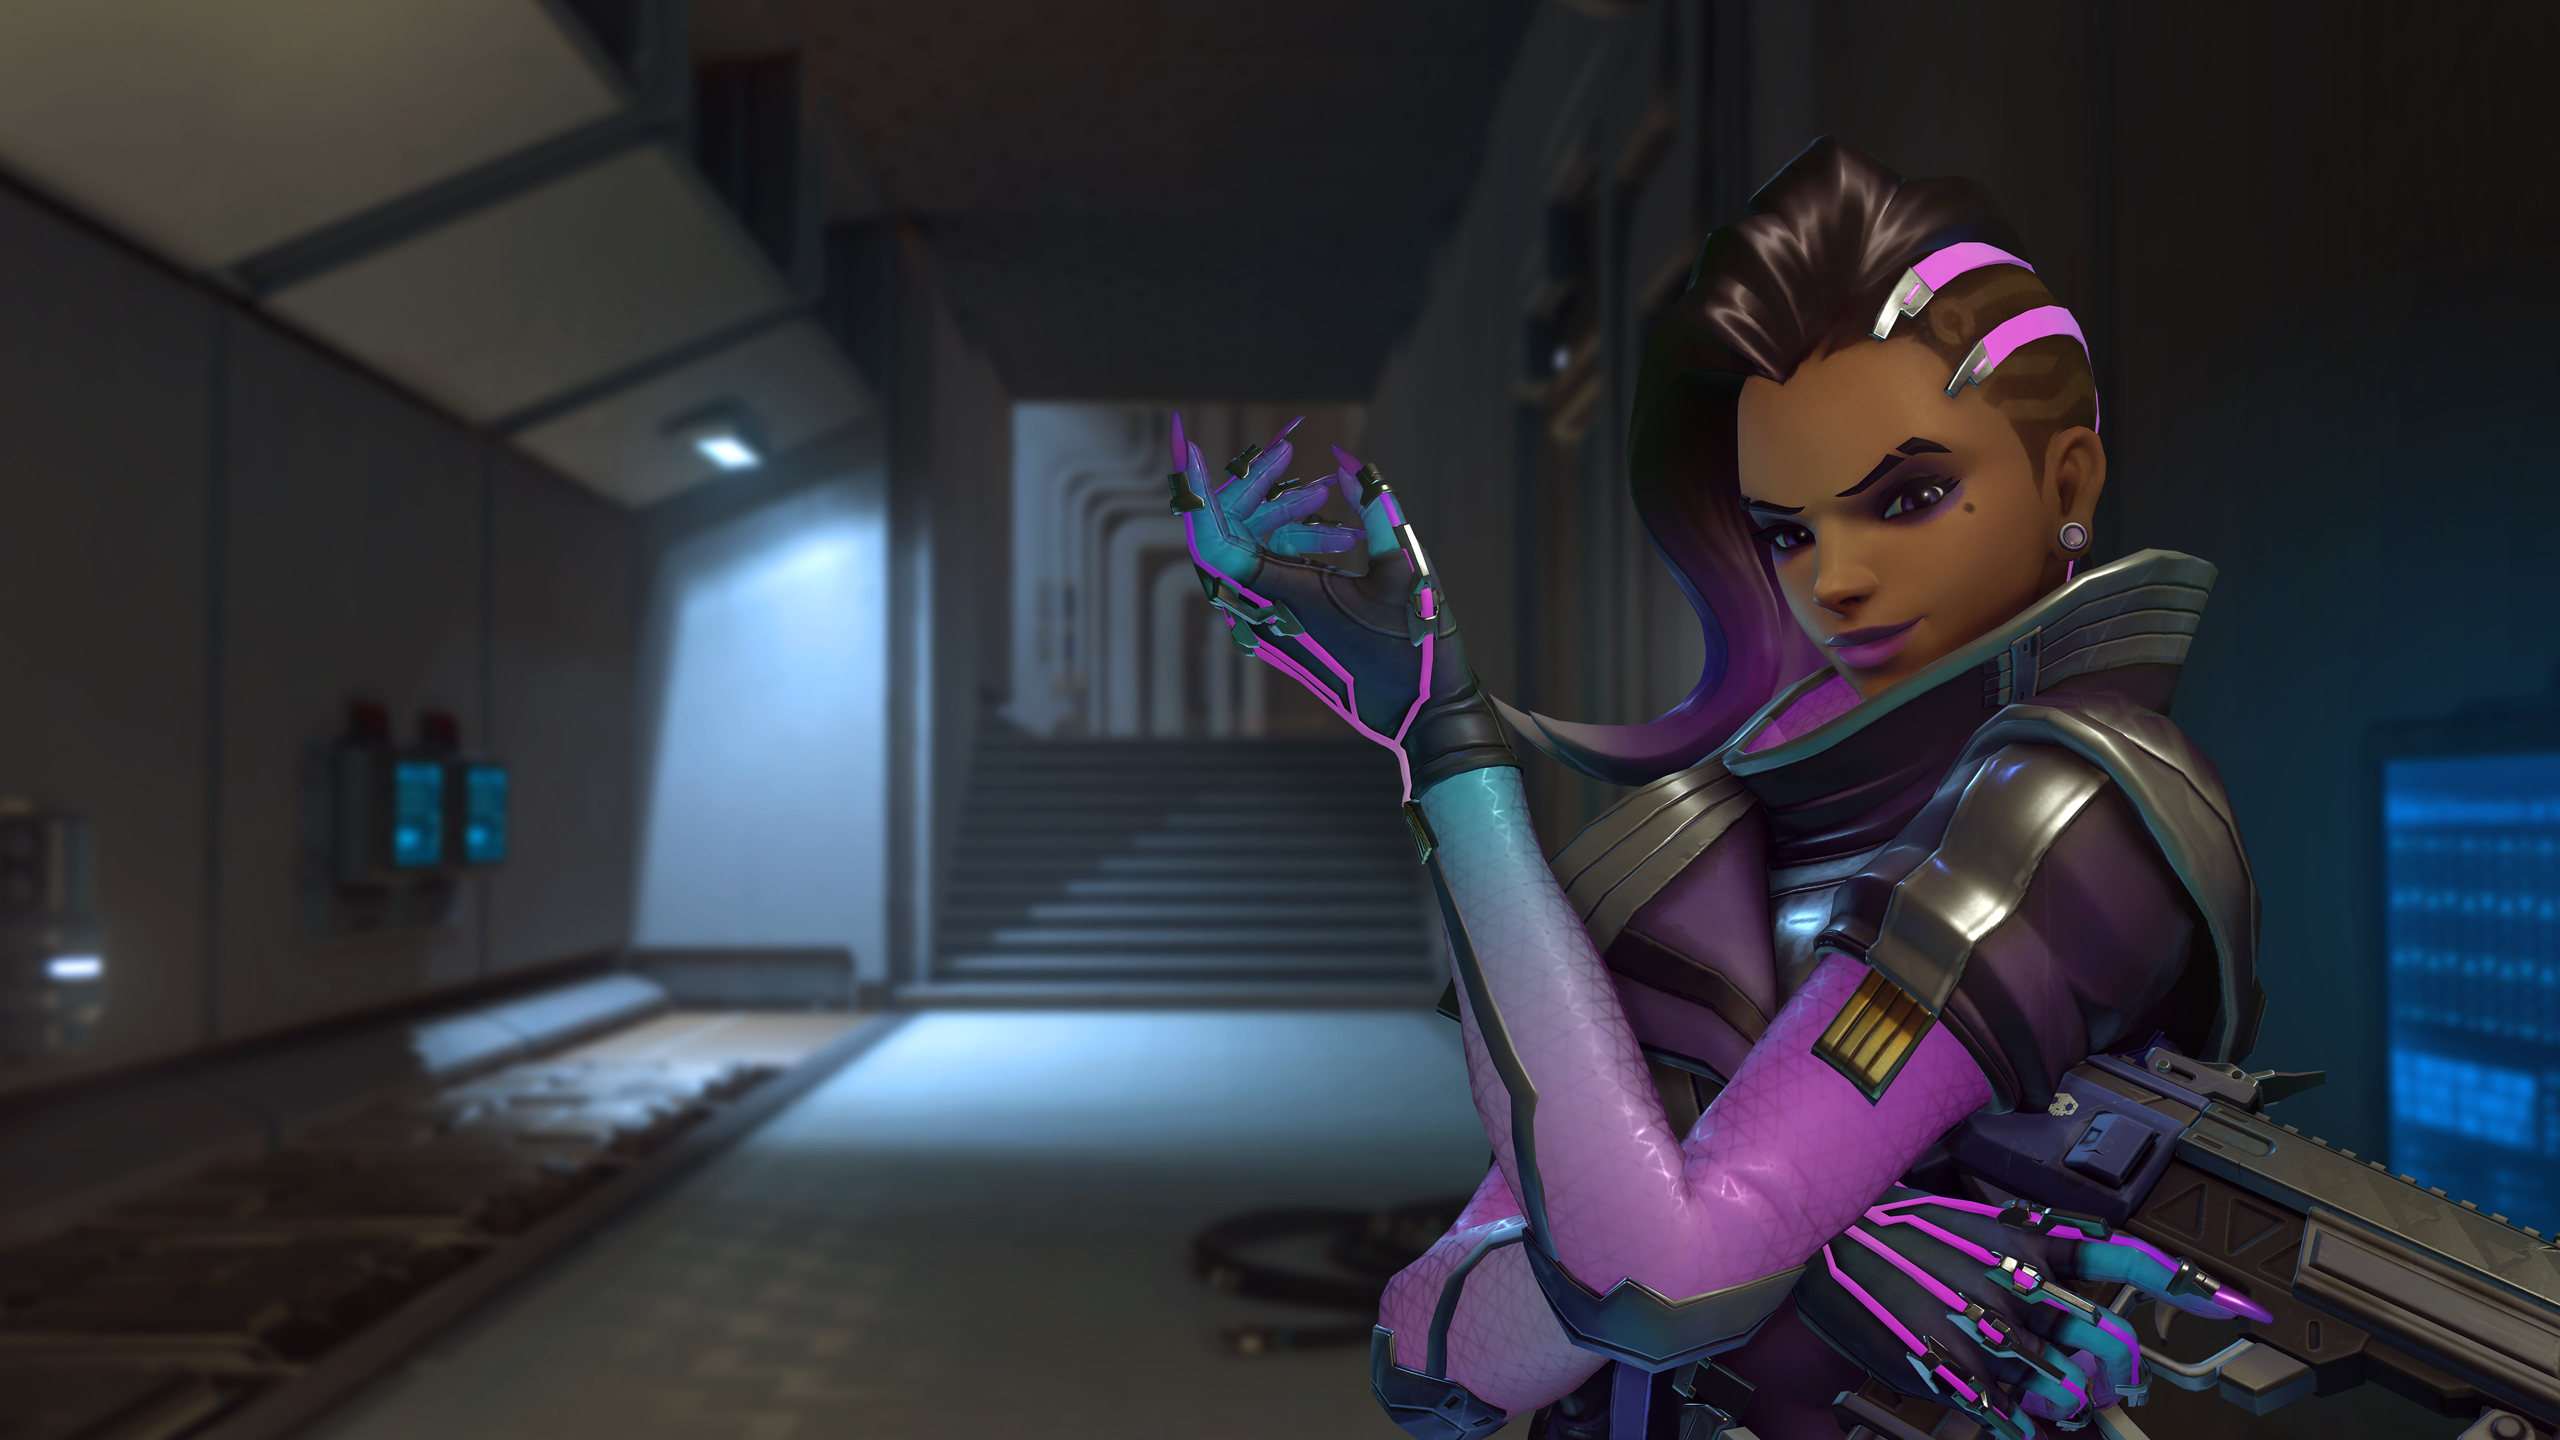 Overwatch Competitive Play permanent bans will start next week